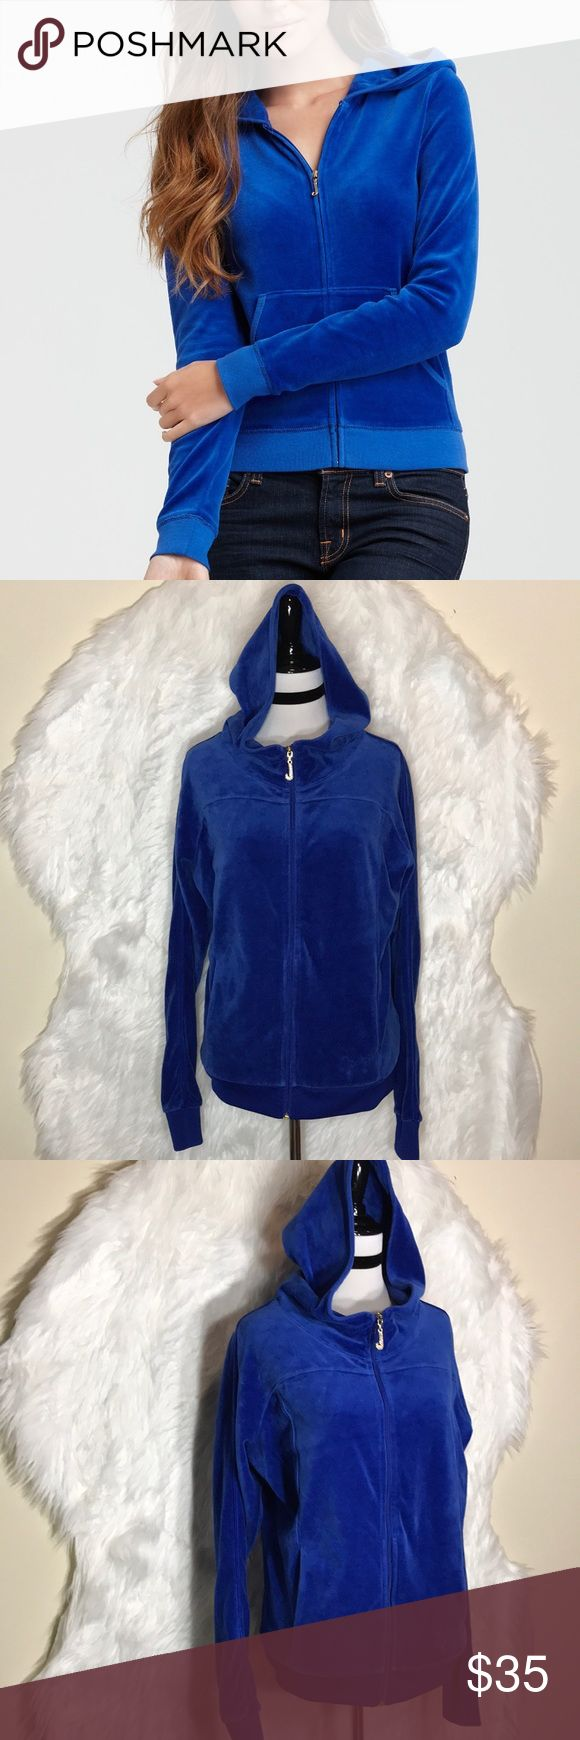 """Juicy Couture Royal Blue Velour Sweatshirt Juicy Couture royal blue velour Sweatsuit. Gold/ Crystal embellishments are included as pictured! Hidden pockets inside & out. Laid flat across @ bust: 21"""", length: 24"""". NWOT Juicy Couture Jackets & Coats"""